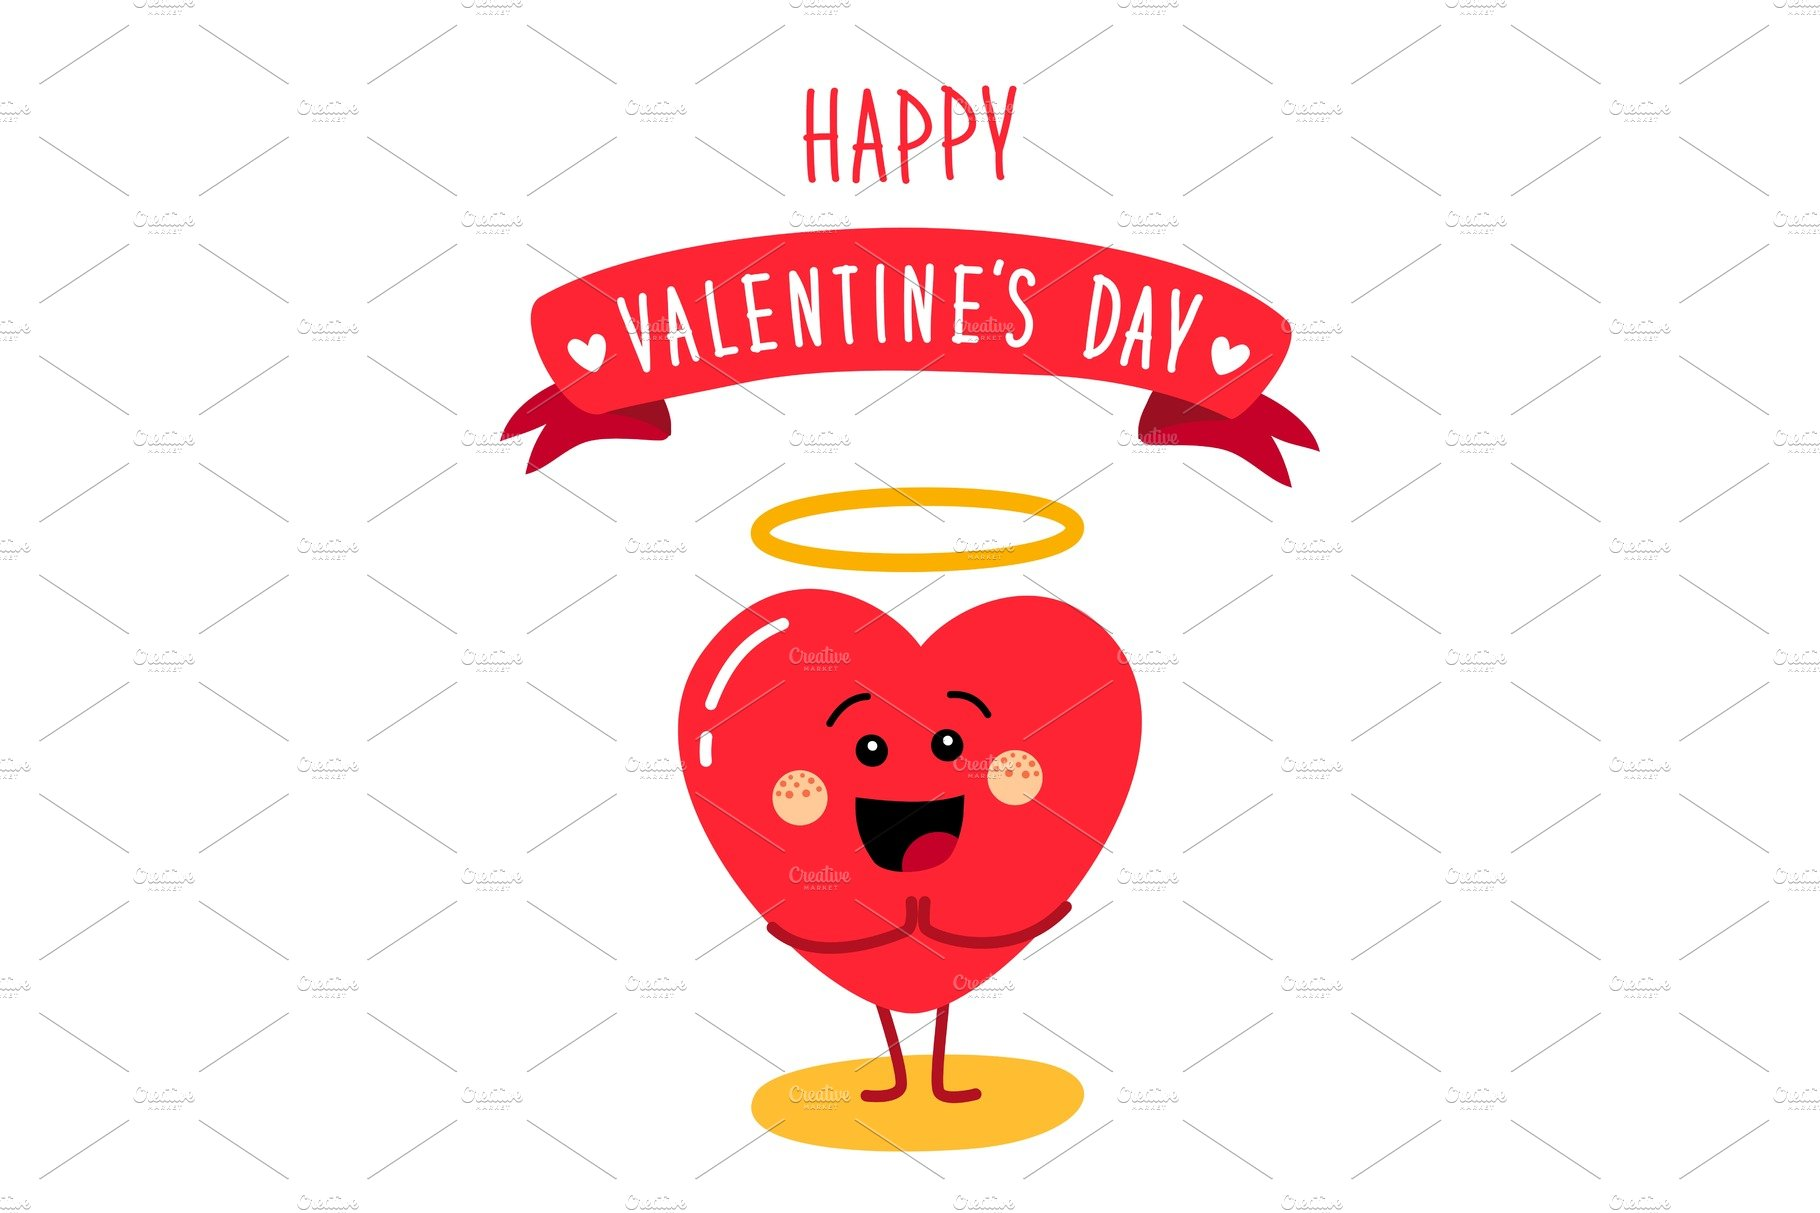 Cartoon Characters Valentines Day : Cute holiday valentines day card with funny cartoon